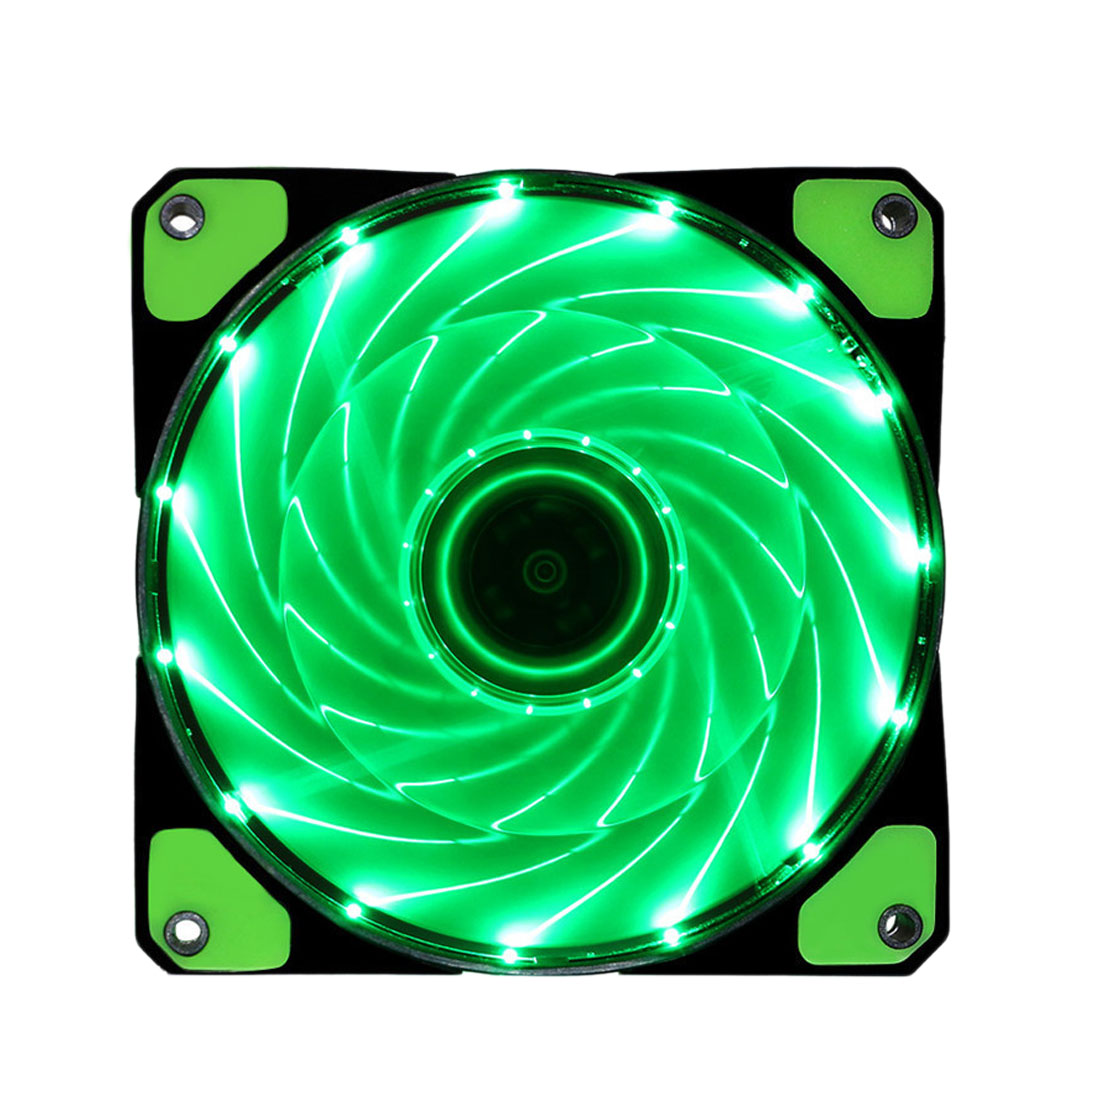 NOYOKERE 120mm LED Ultra Computer Cooler Silent Computer PC Case Fan 15 LEDs 12V With Rubber Quiet Connector Easy Installed Fan